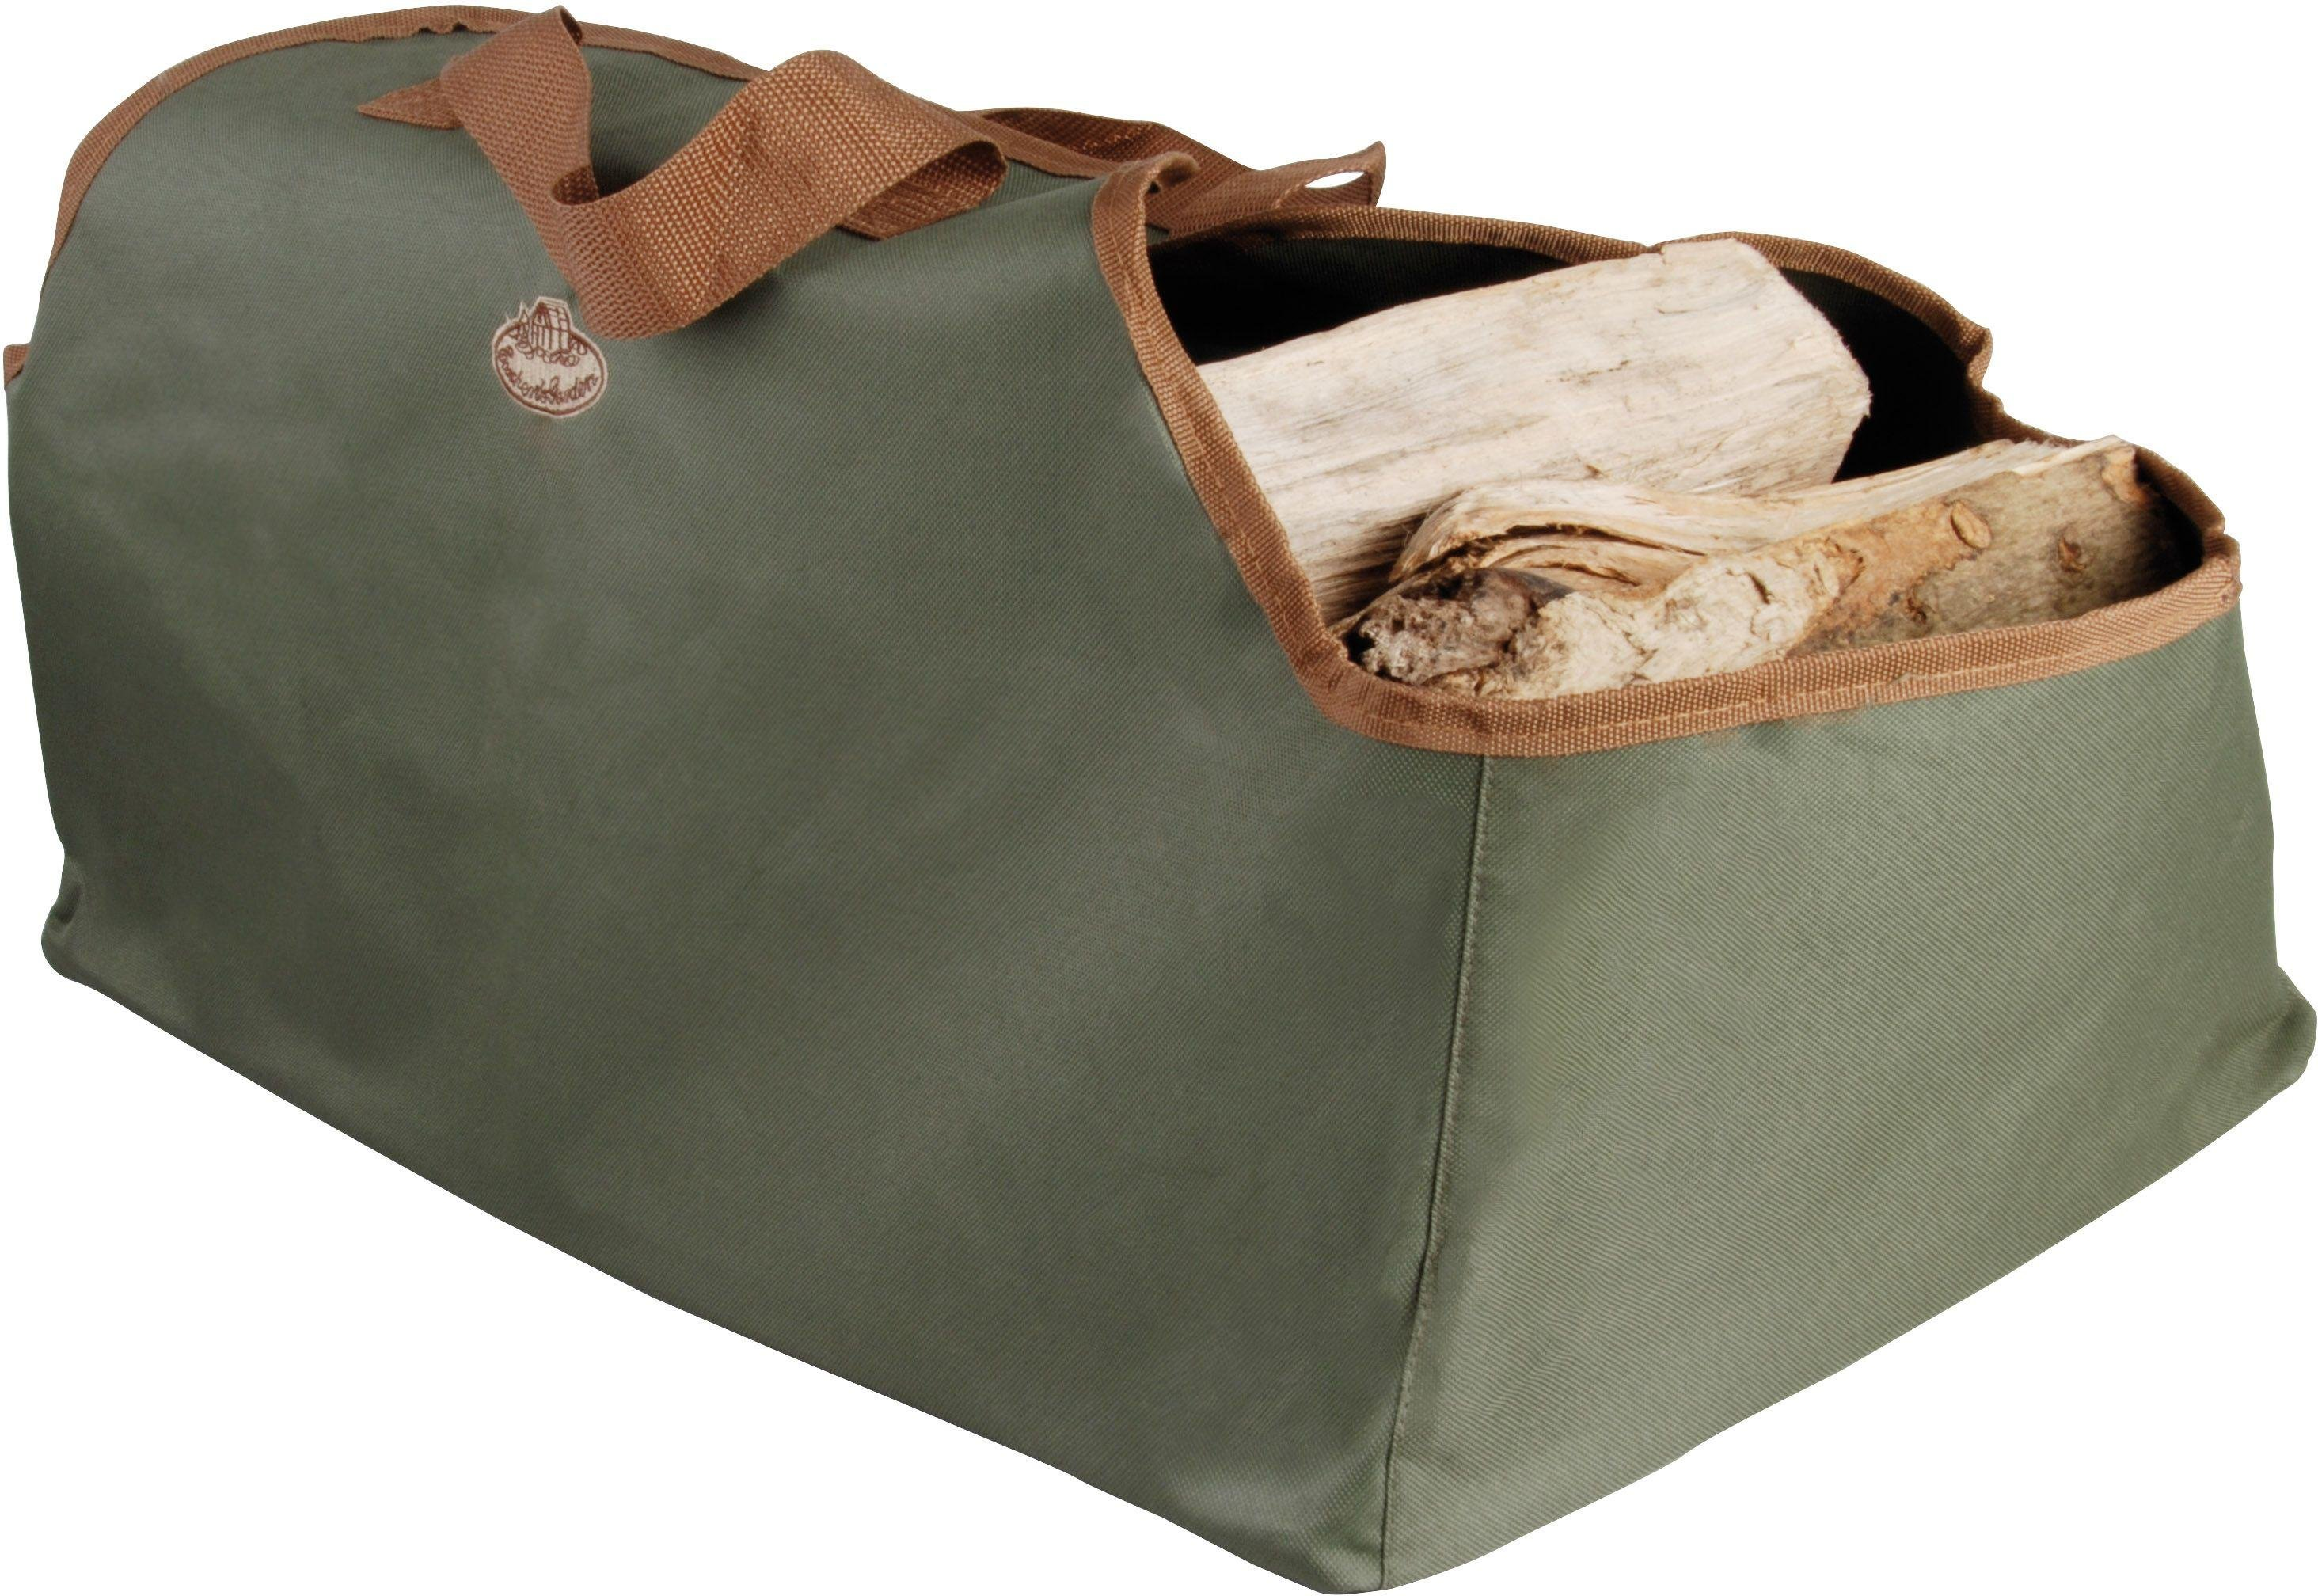 Fallen Fruits Log Sack. lowest price